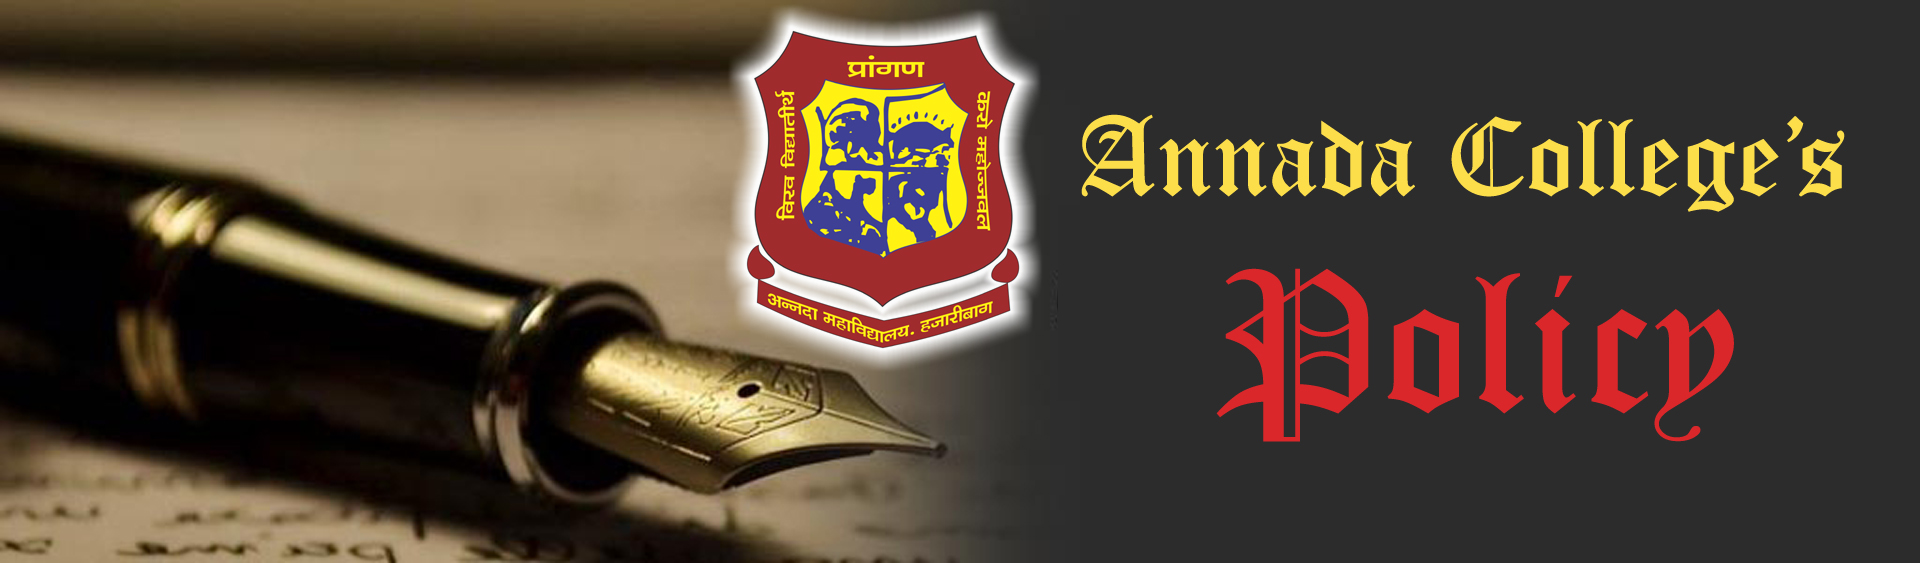 Annada College's Policy